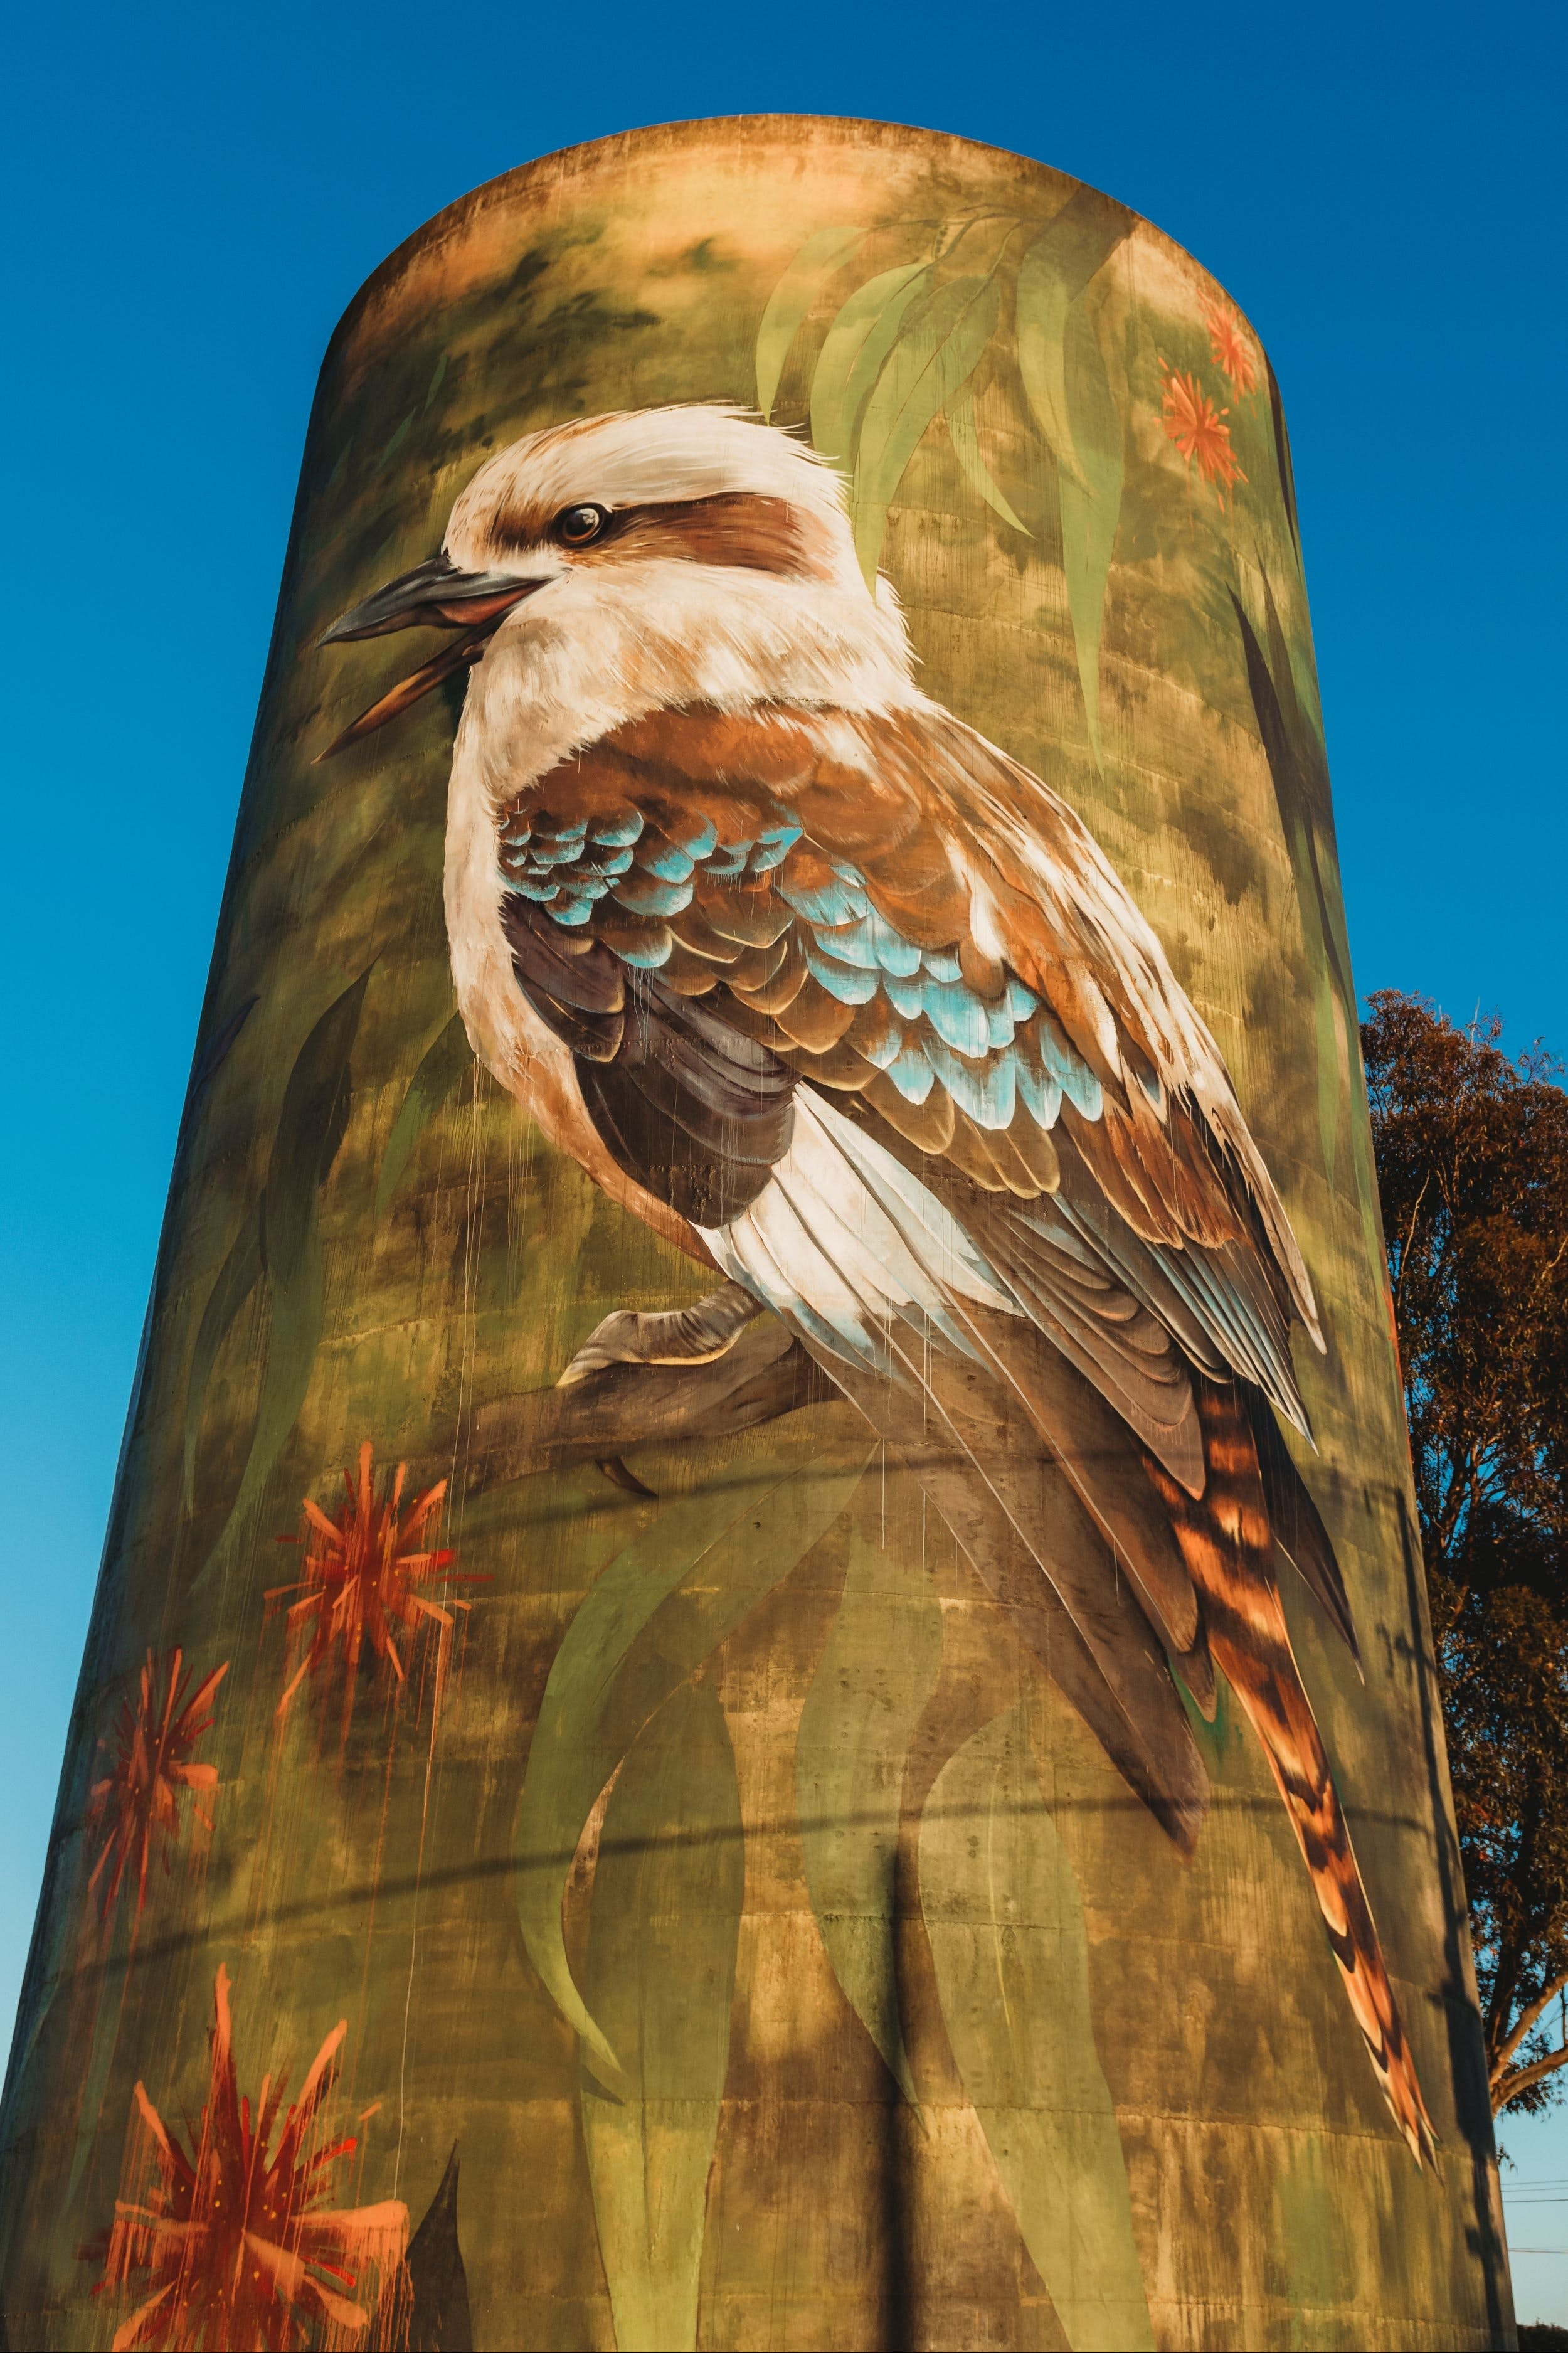 Deniliquin Water Tower Mural - Accommodation Batemans Bay